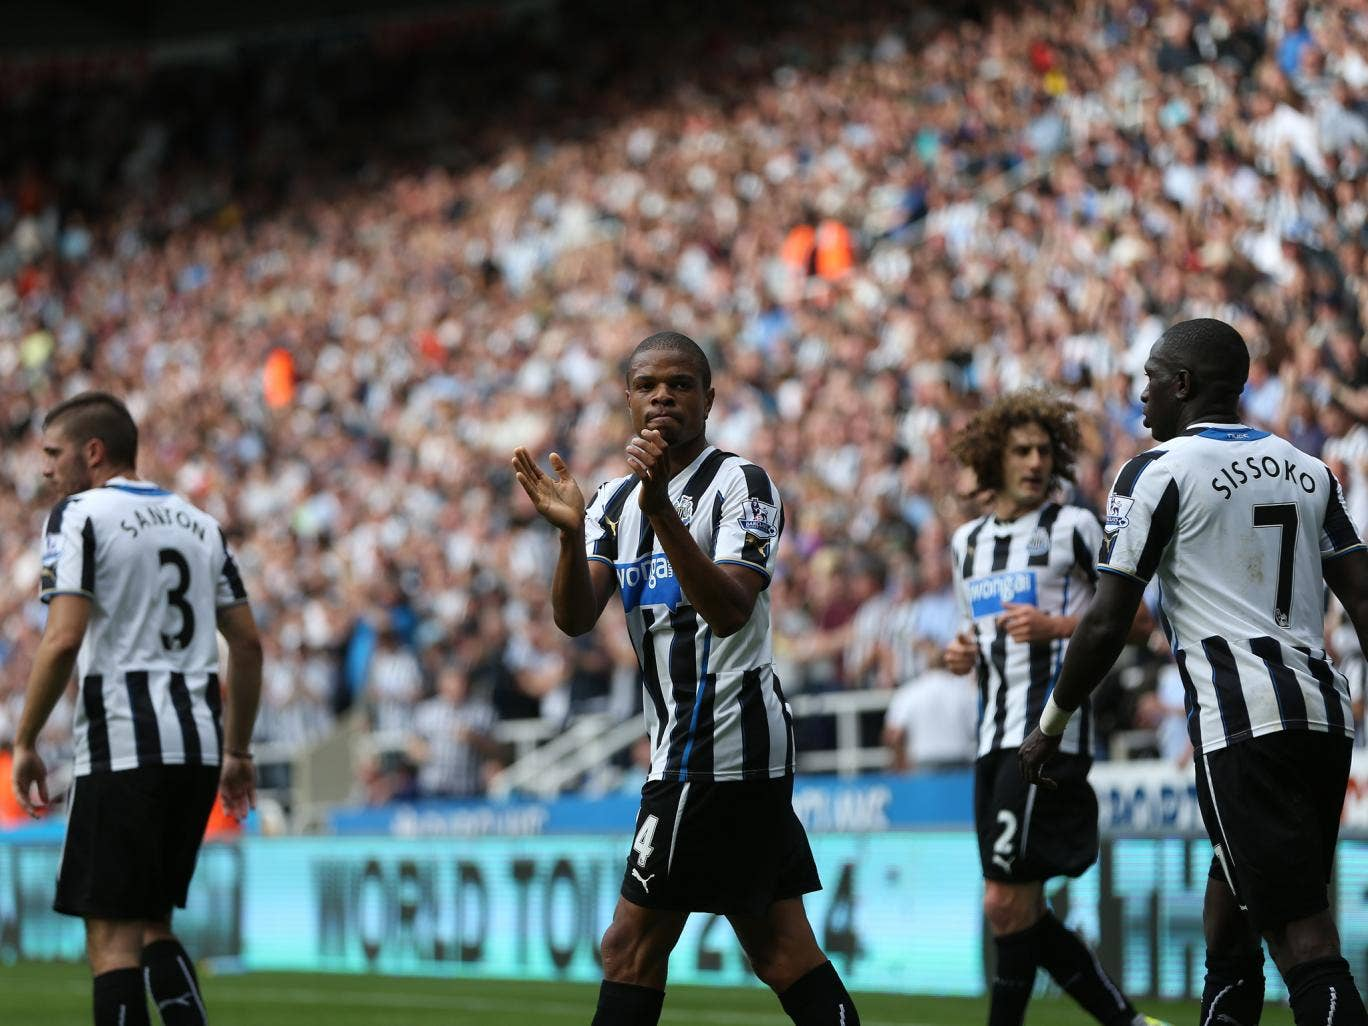 Loic Remy celebrates scoring for Newcastle